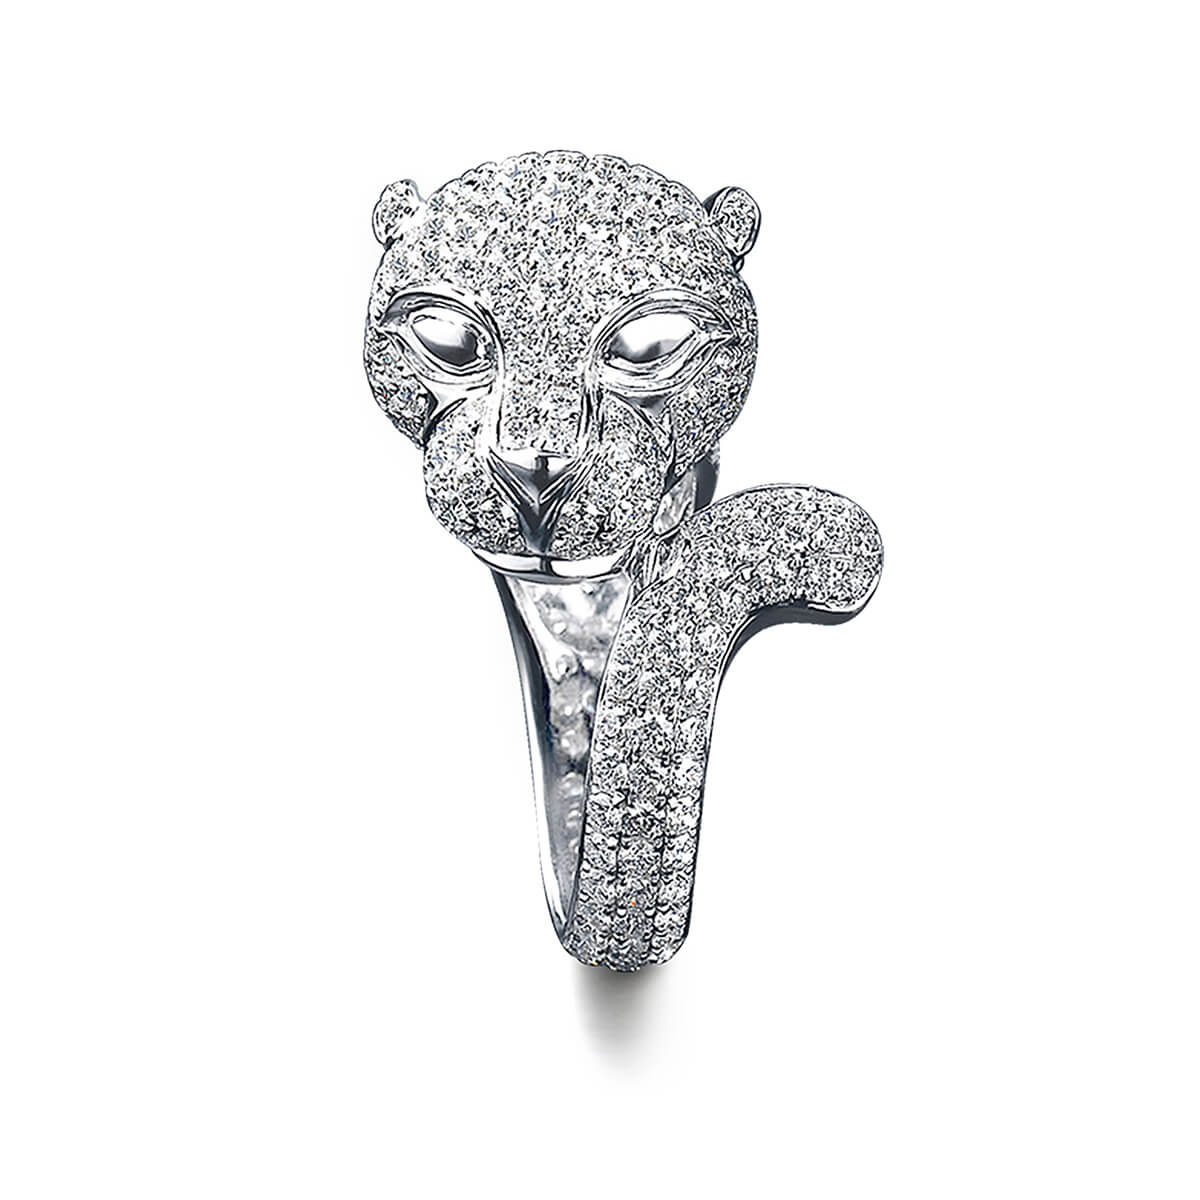 Panther Ring in 18K White Gold Set With Diamonds Front View